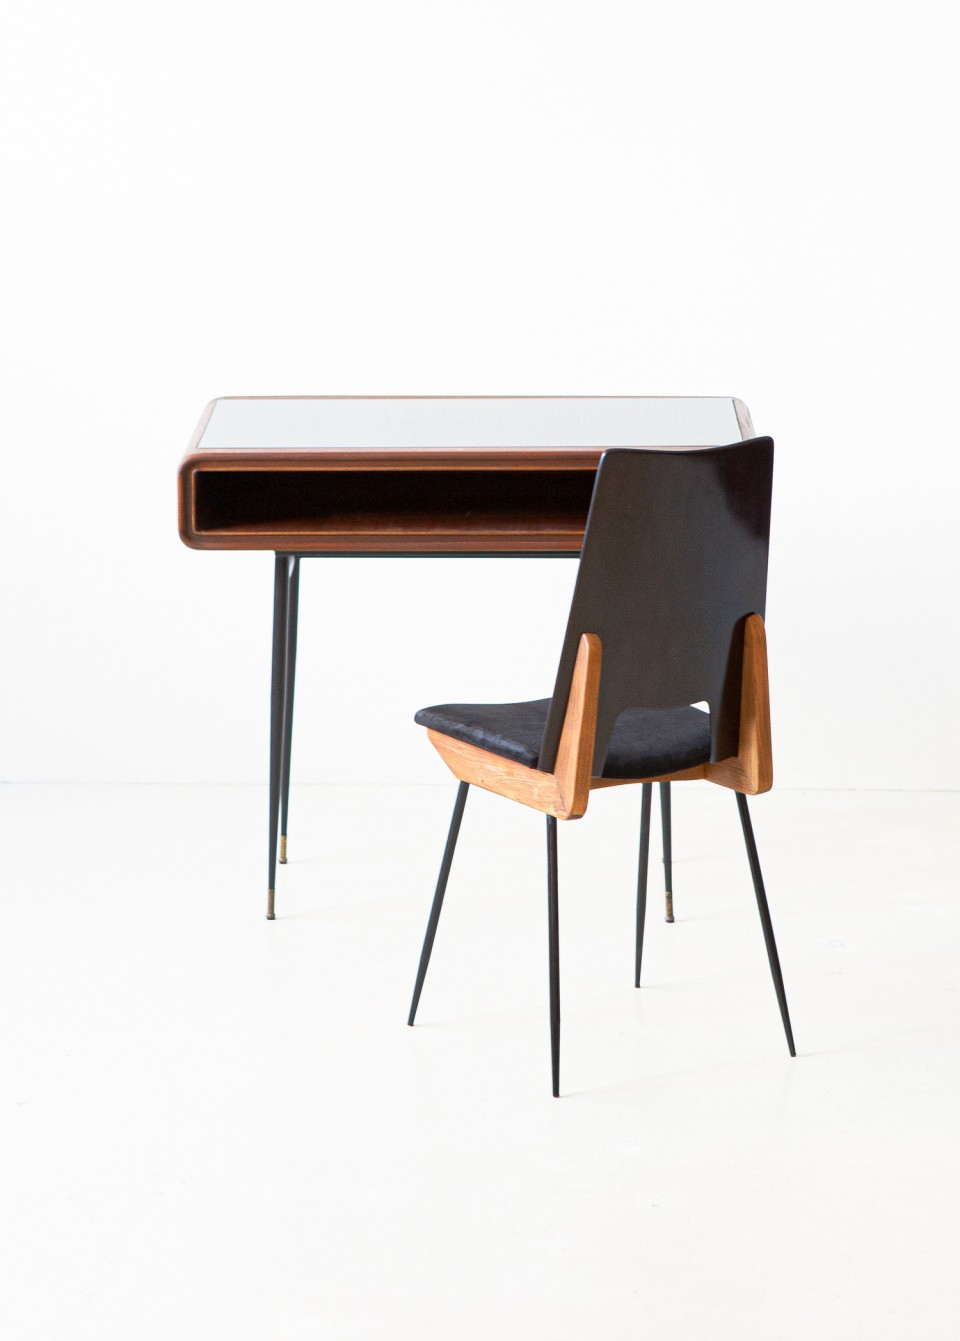 1950s Italian desk by fratelli Strada with Carlo Ratti chair